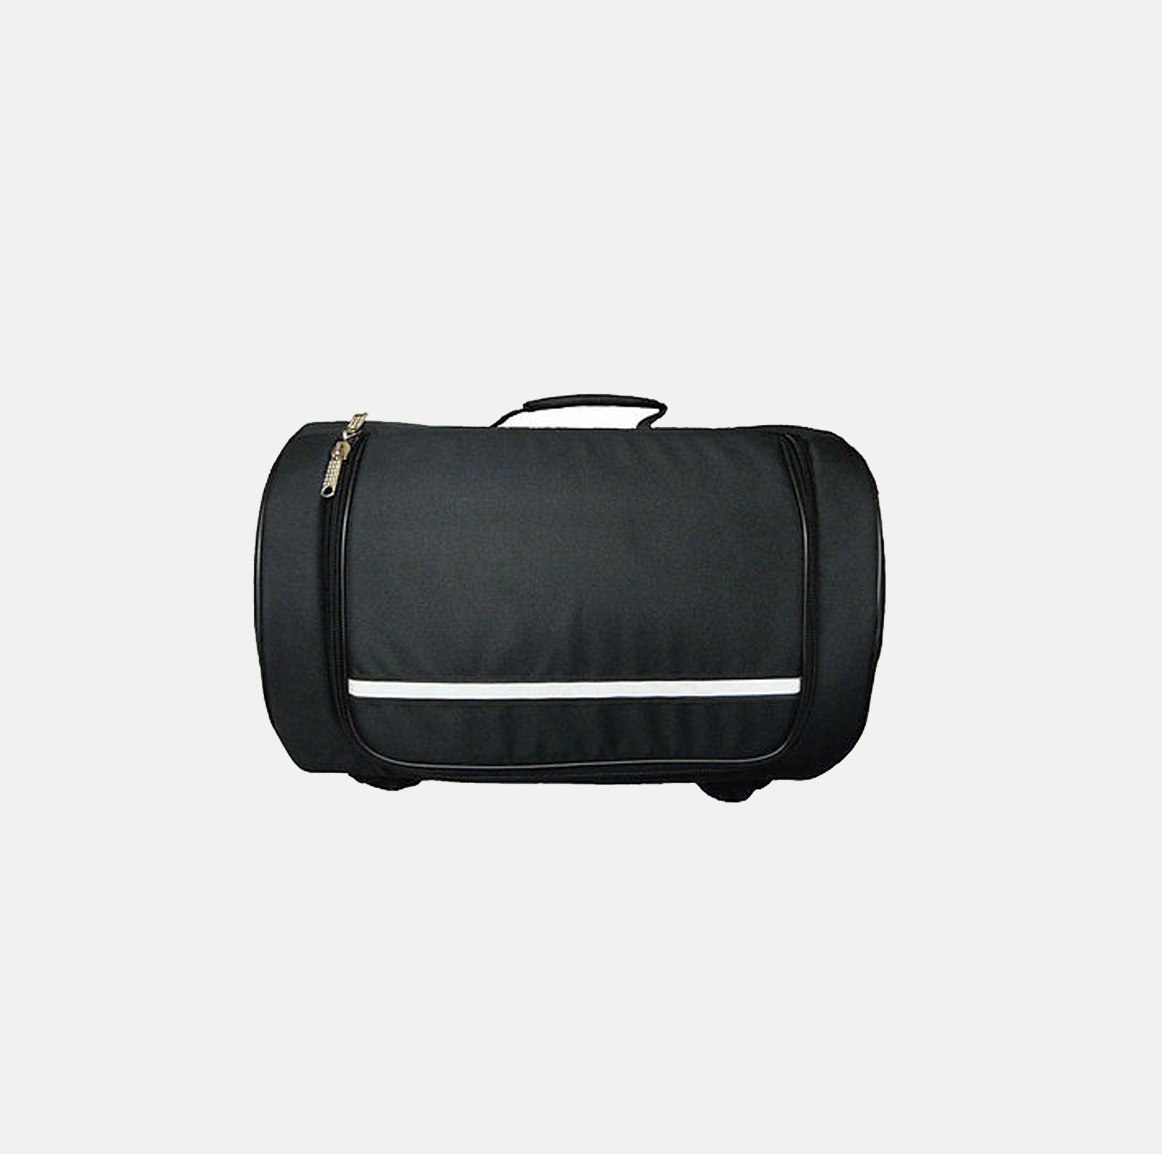 Motorcycle Roll bag rain cover